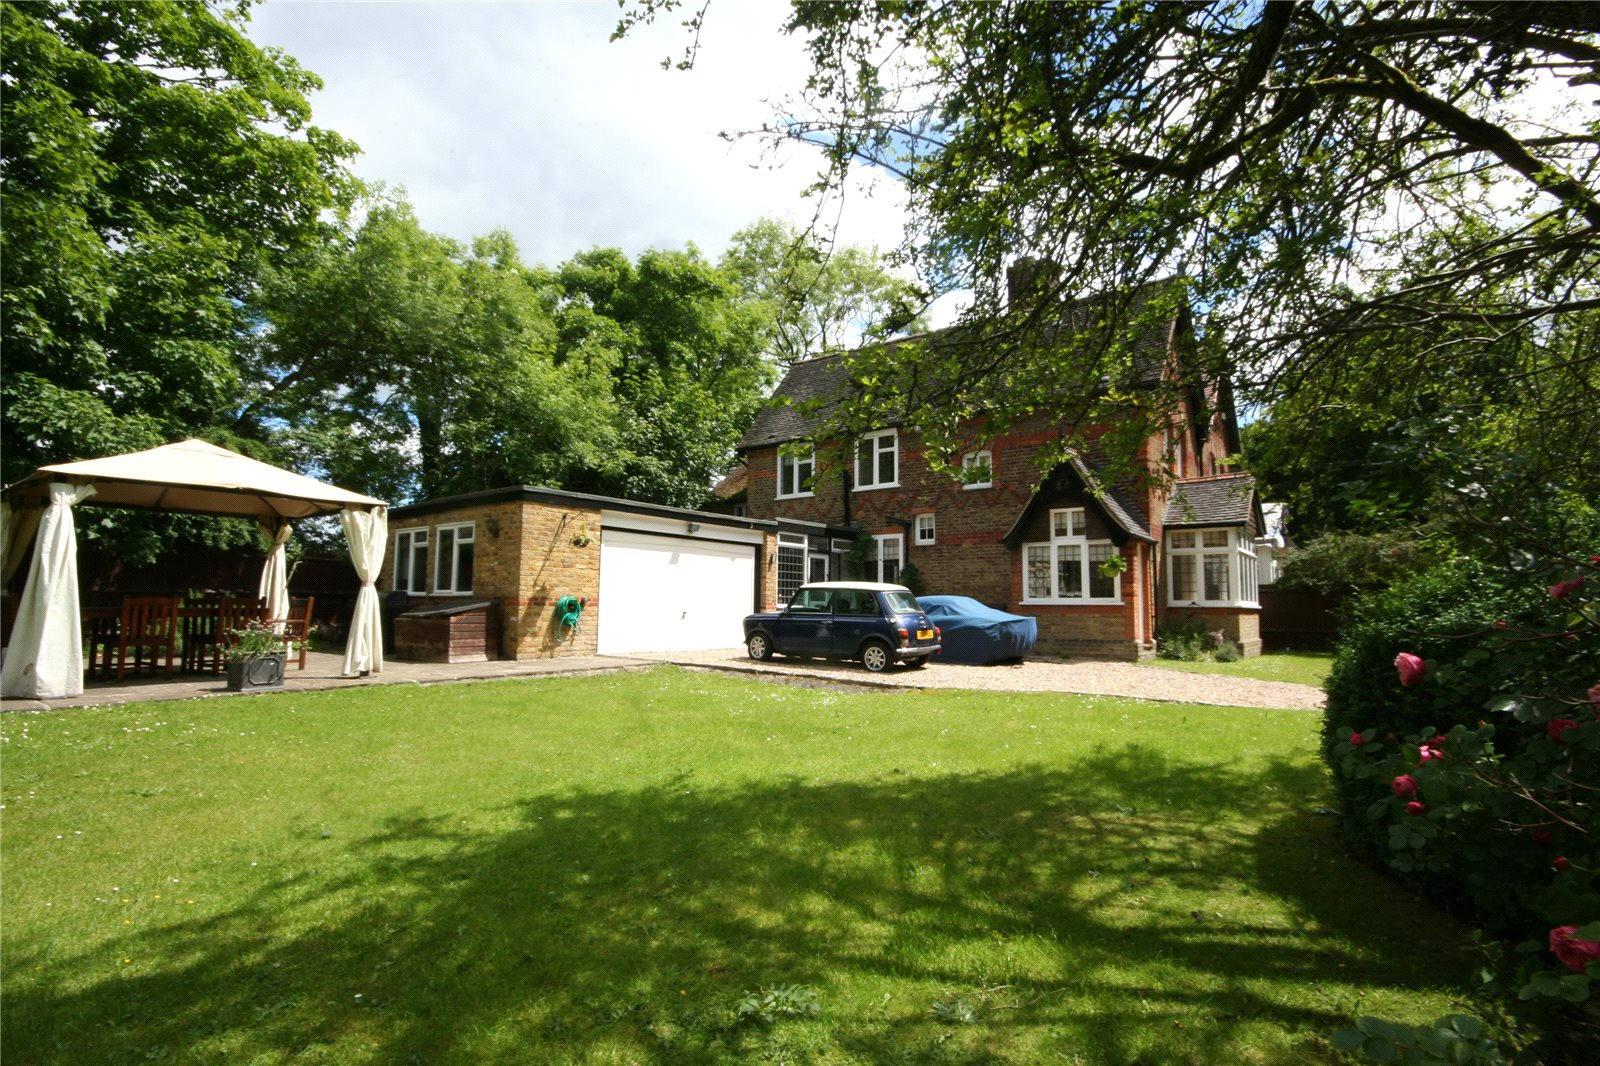 Casa Unifamiliar por un Venta en Heusden Way, Gerrards Cross, Buckinghamshire, SL9 Gerrards Cross, Inglaterra